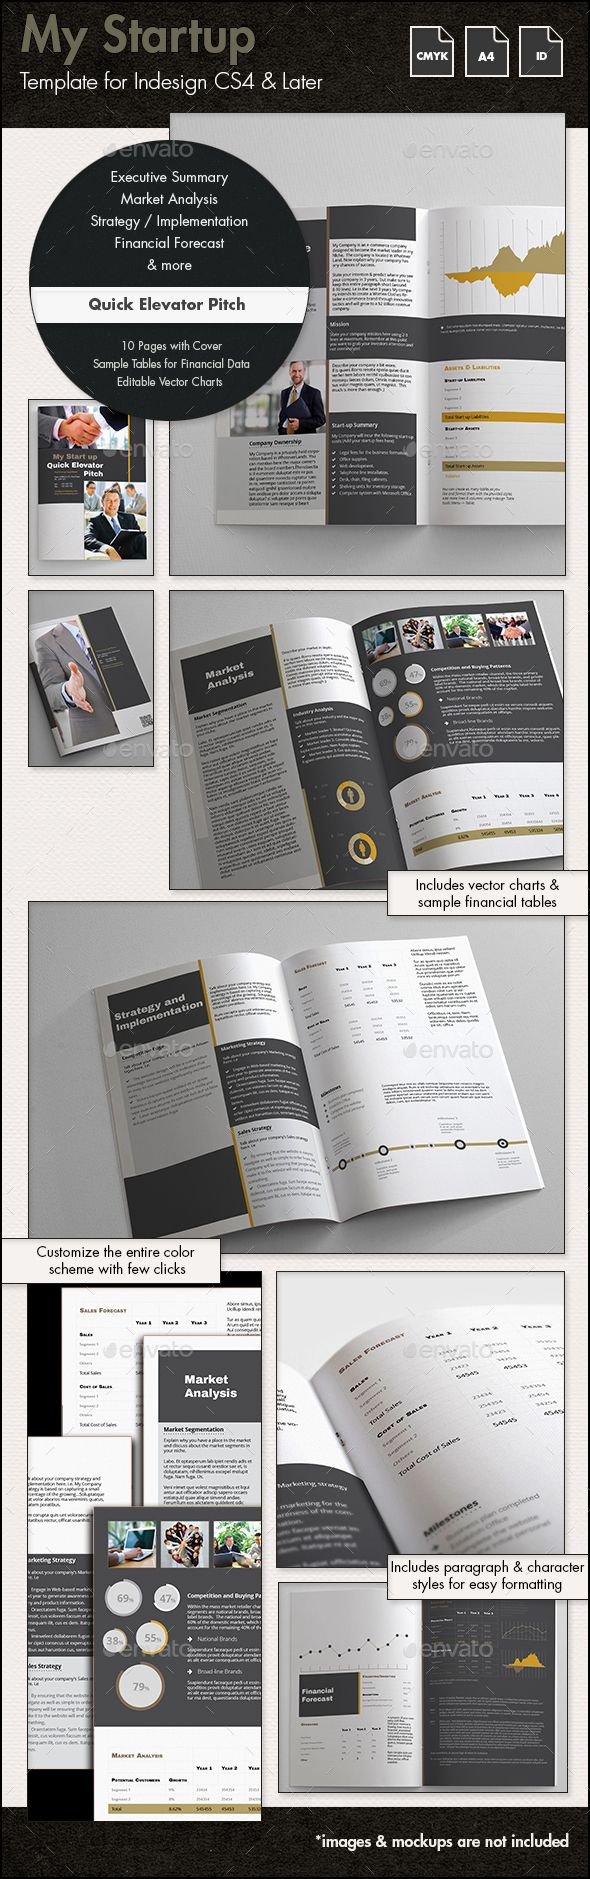 images about design haven templates food my startup quick elevator pitch template a4